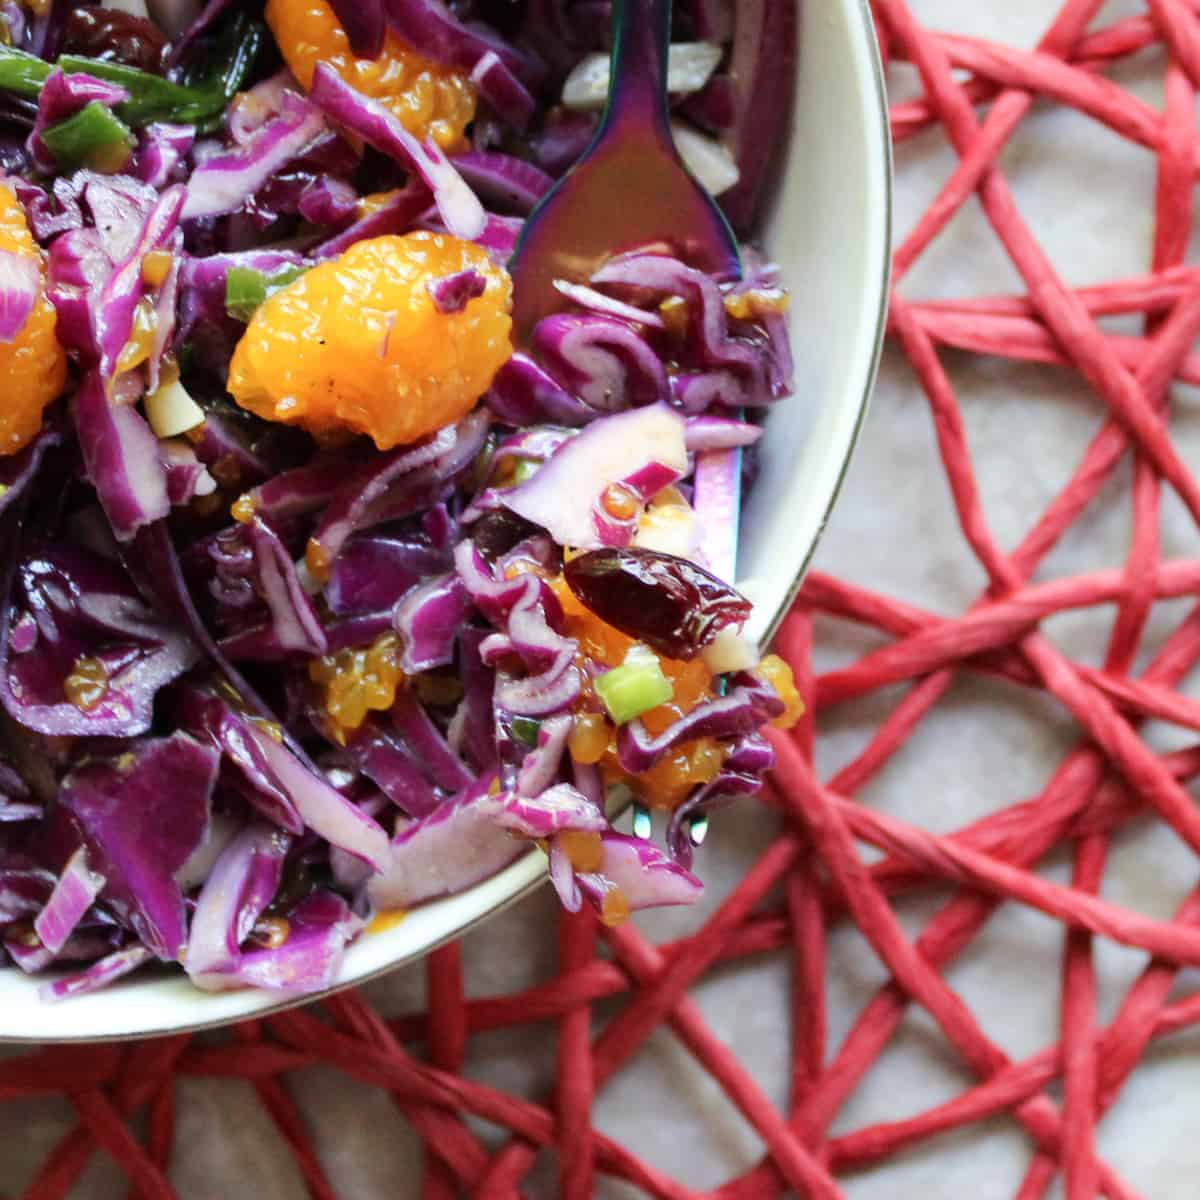 red cabbage salad on a fork